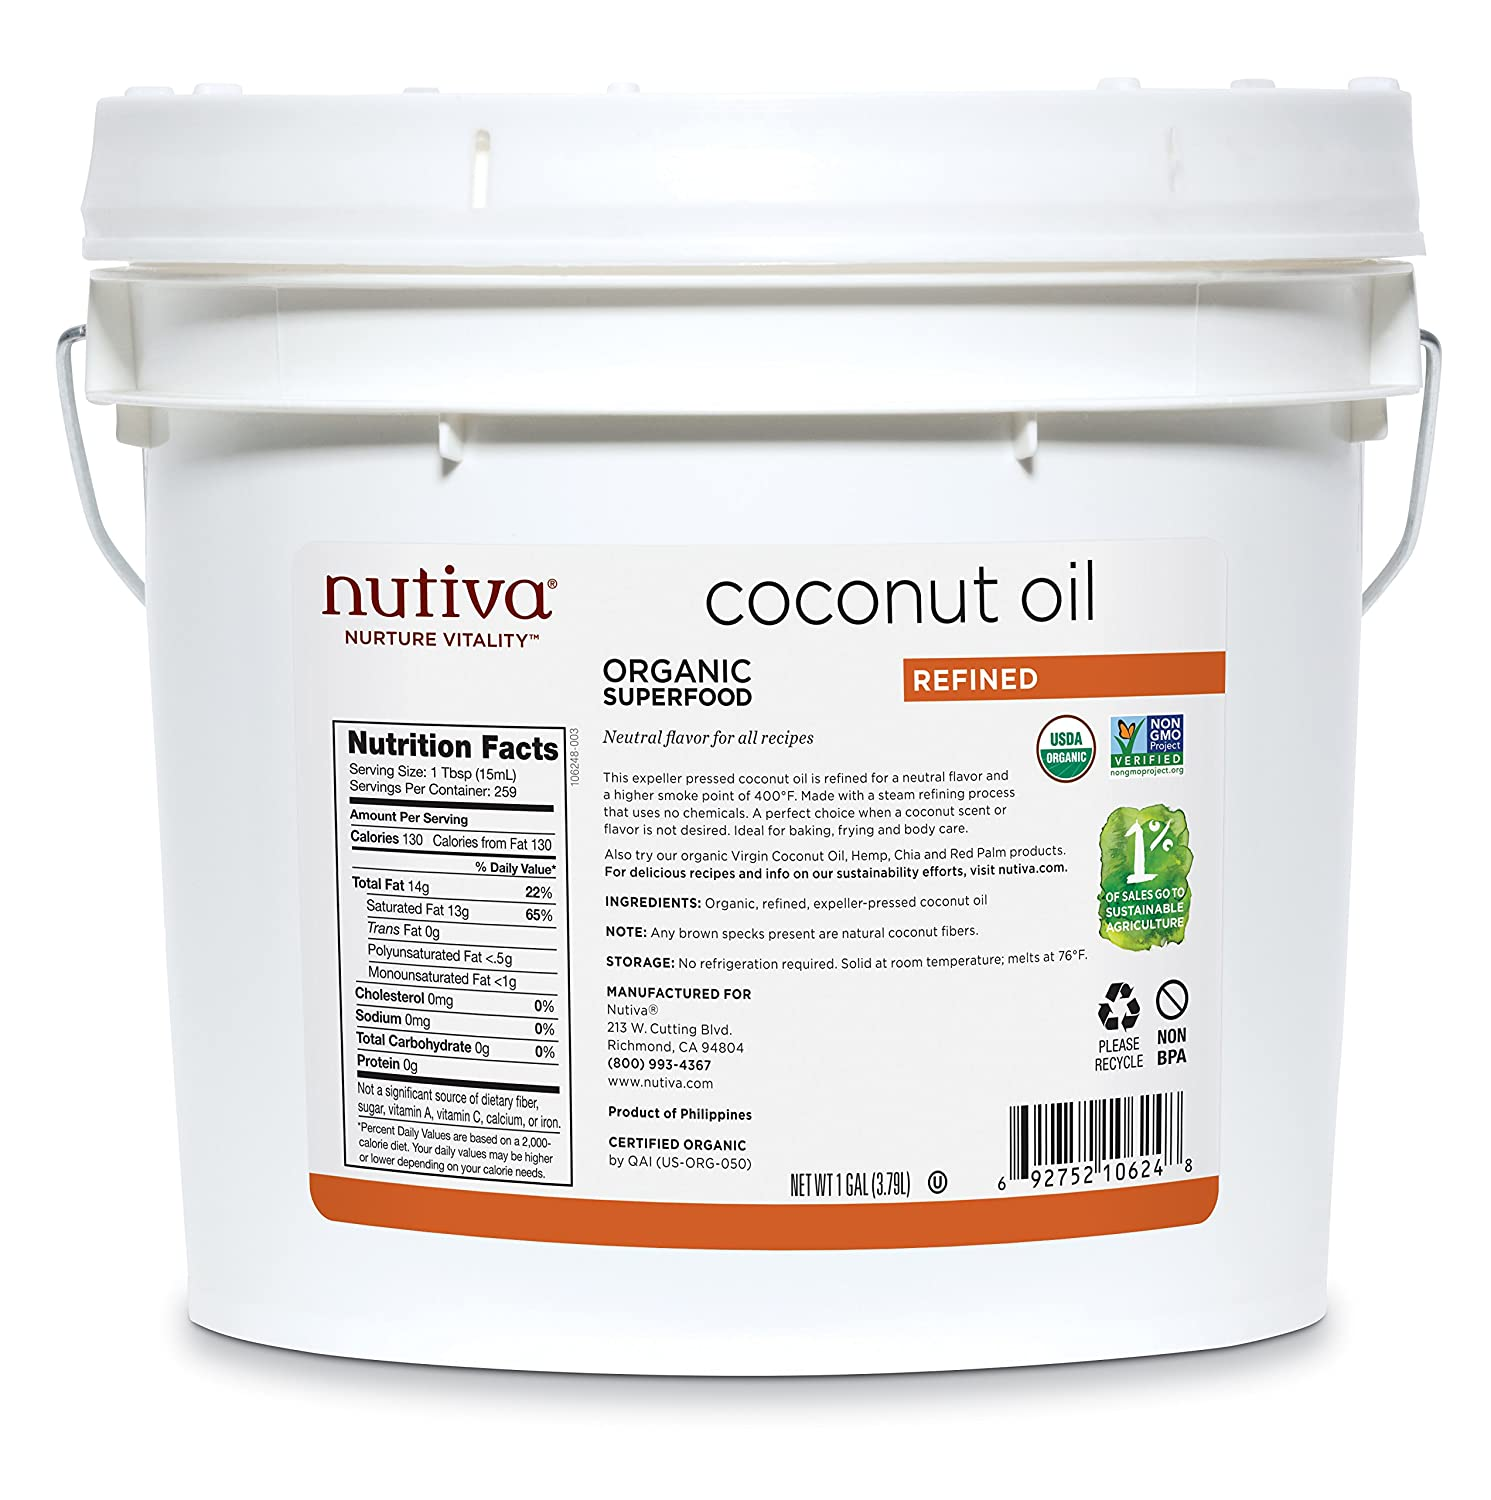 Nutiva Organic, Steam Refined Coconut Oil from non-GMO, Sustainably Farmed Coconuts, 128 Fl Oz (Pack of 1)